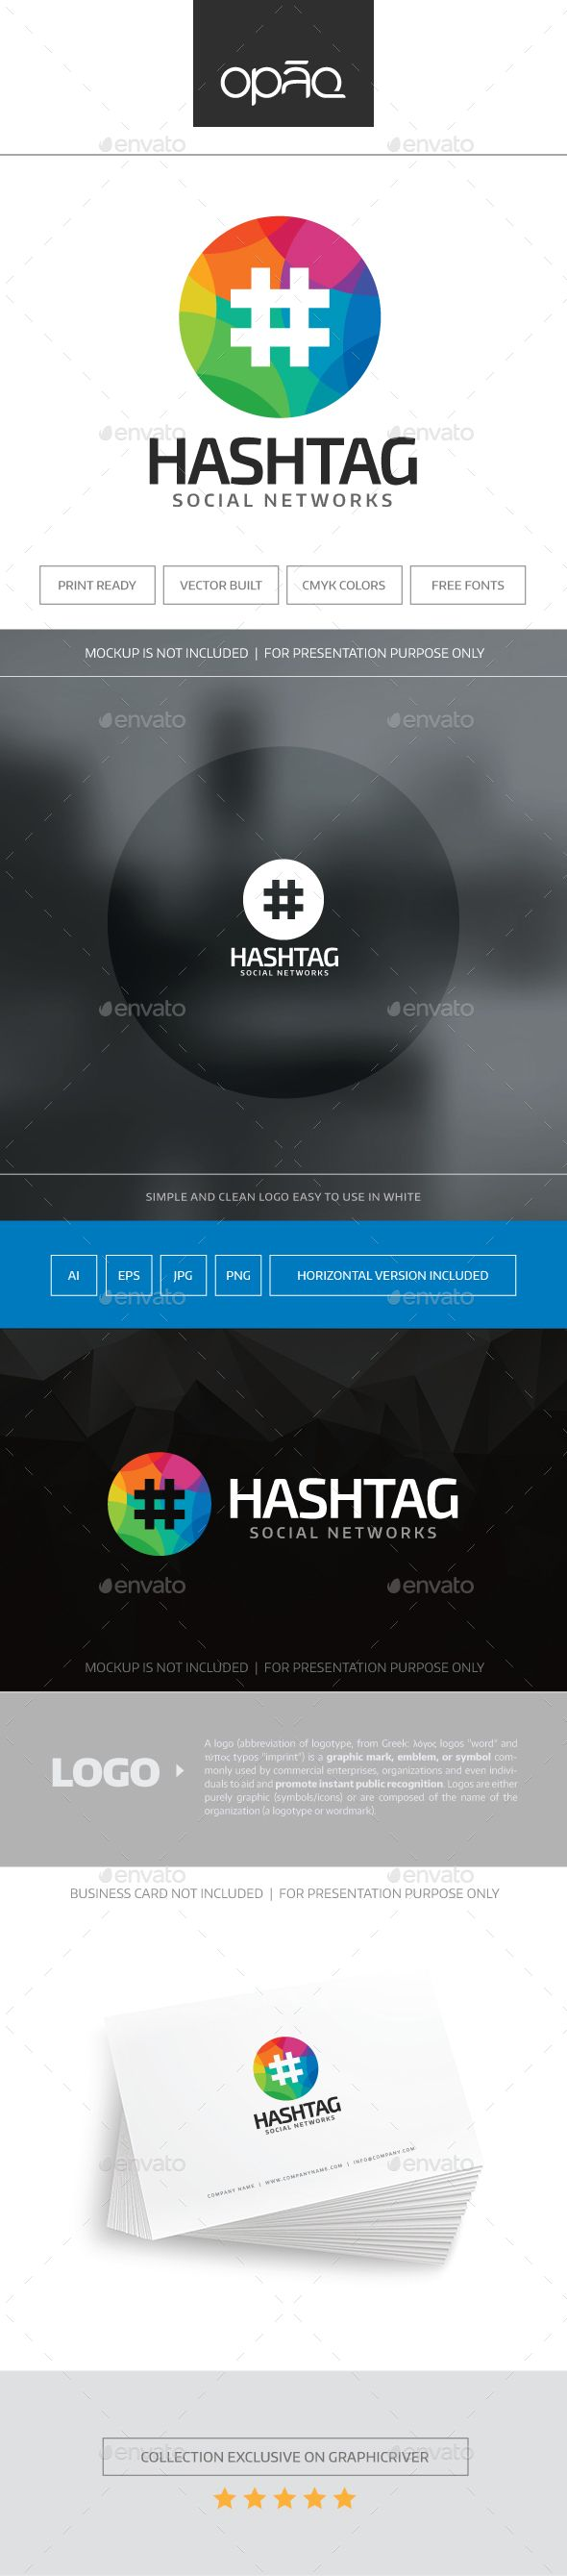 Hashtag Logo — Transparent PNG #abstract #coding • Available here → https://graphicriver.net/item/hashtag-logo/17441046?ref=pxcr